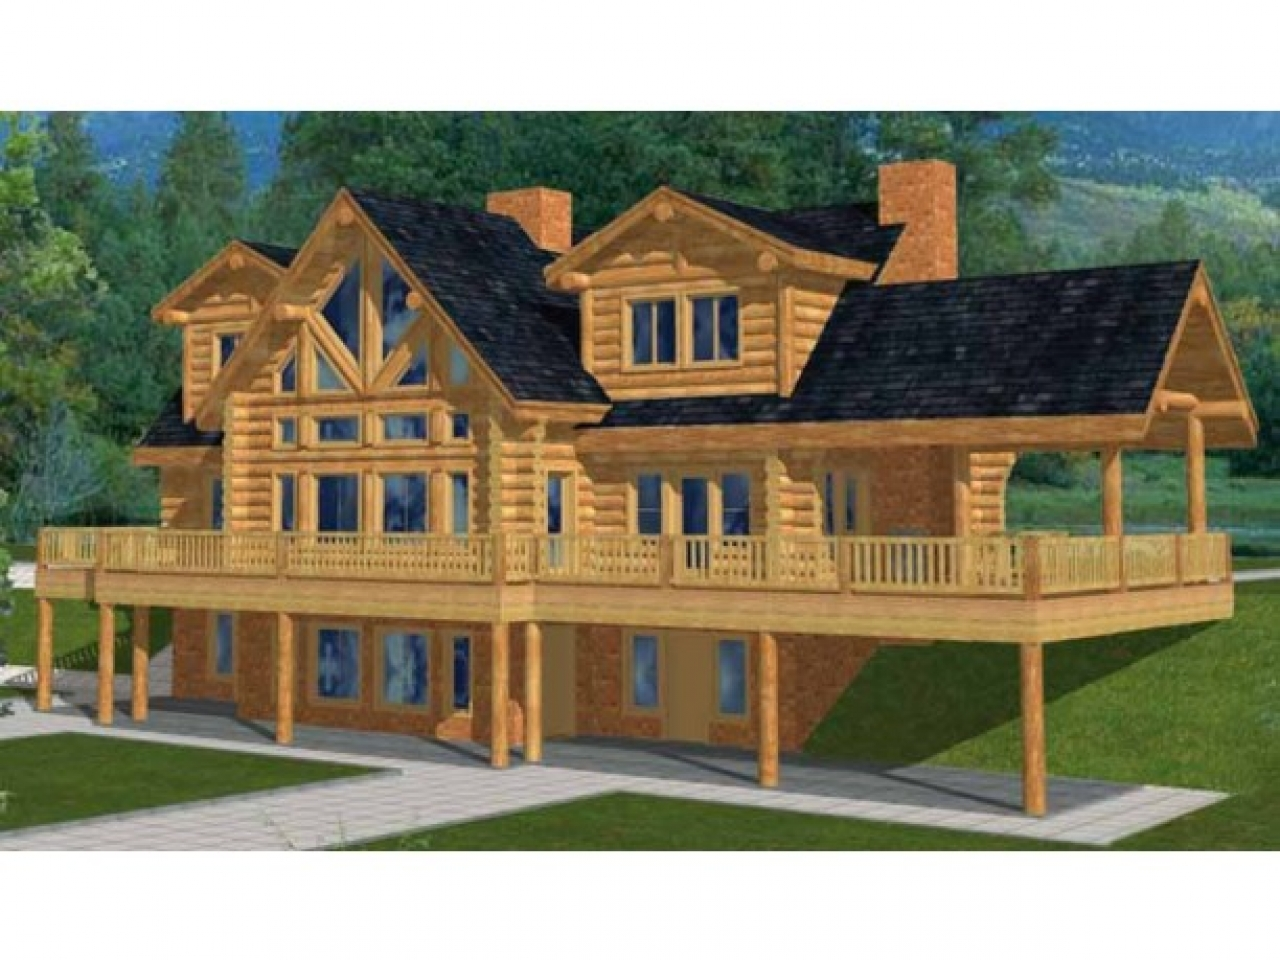 Two story log cabin house plans inexpensive modular homes for Log house plans